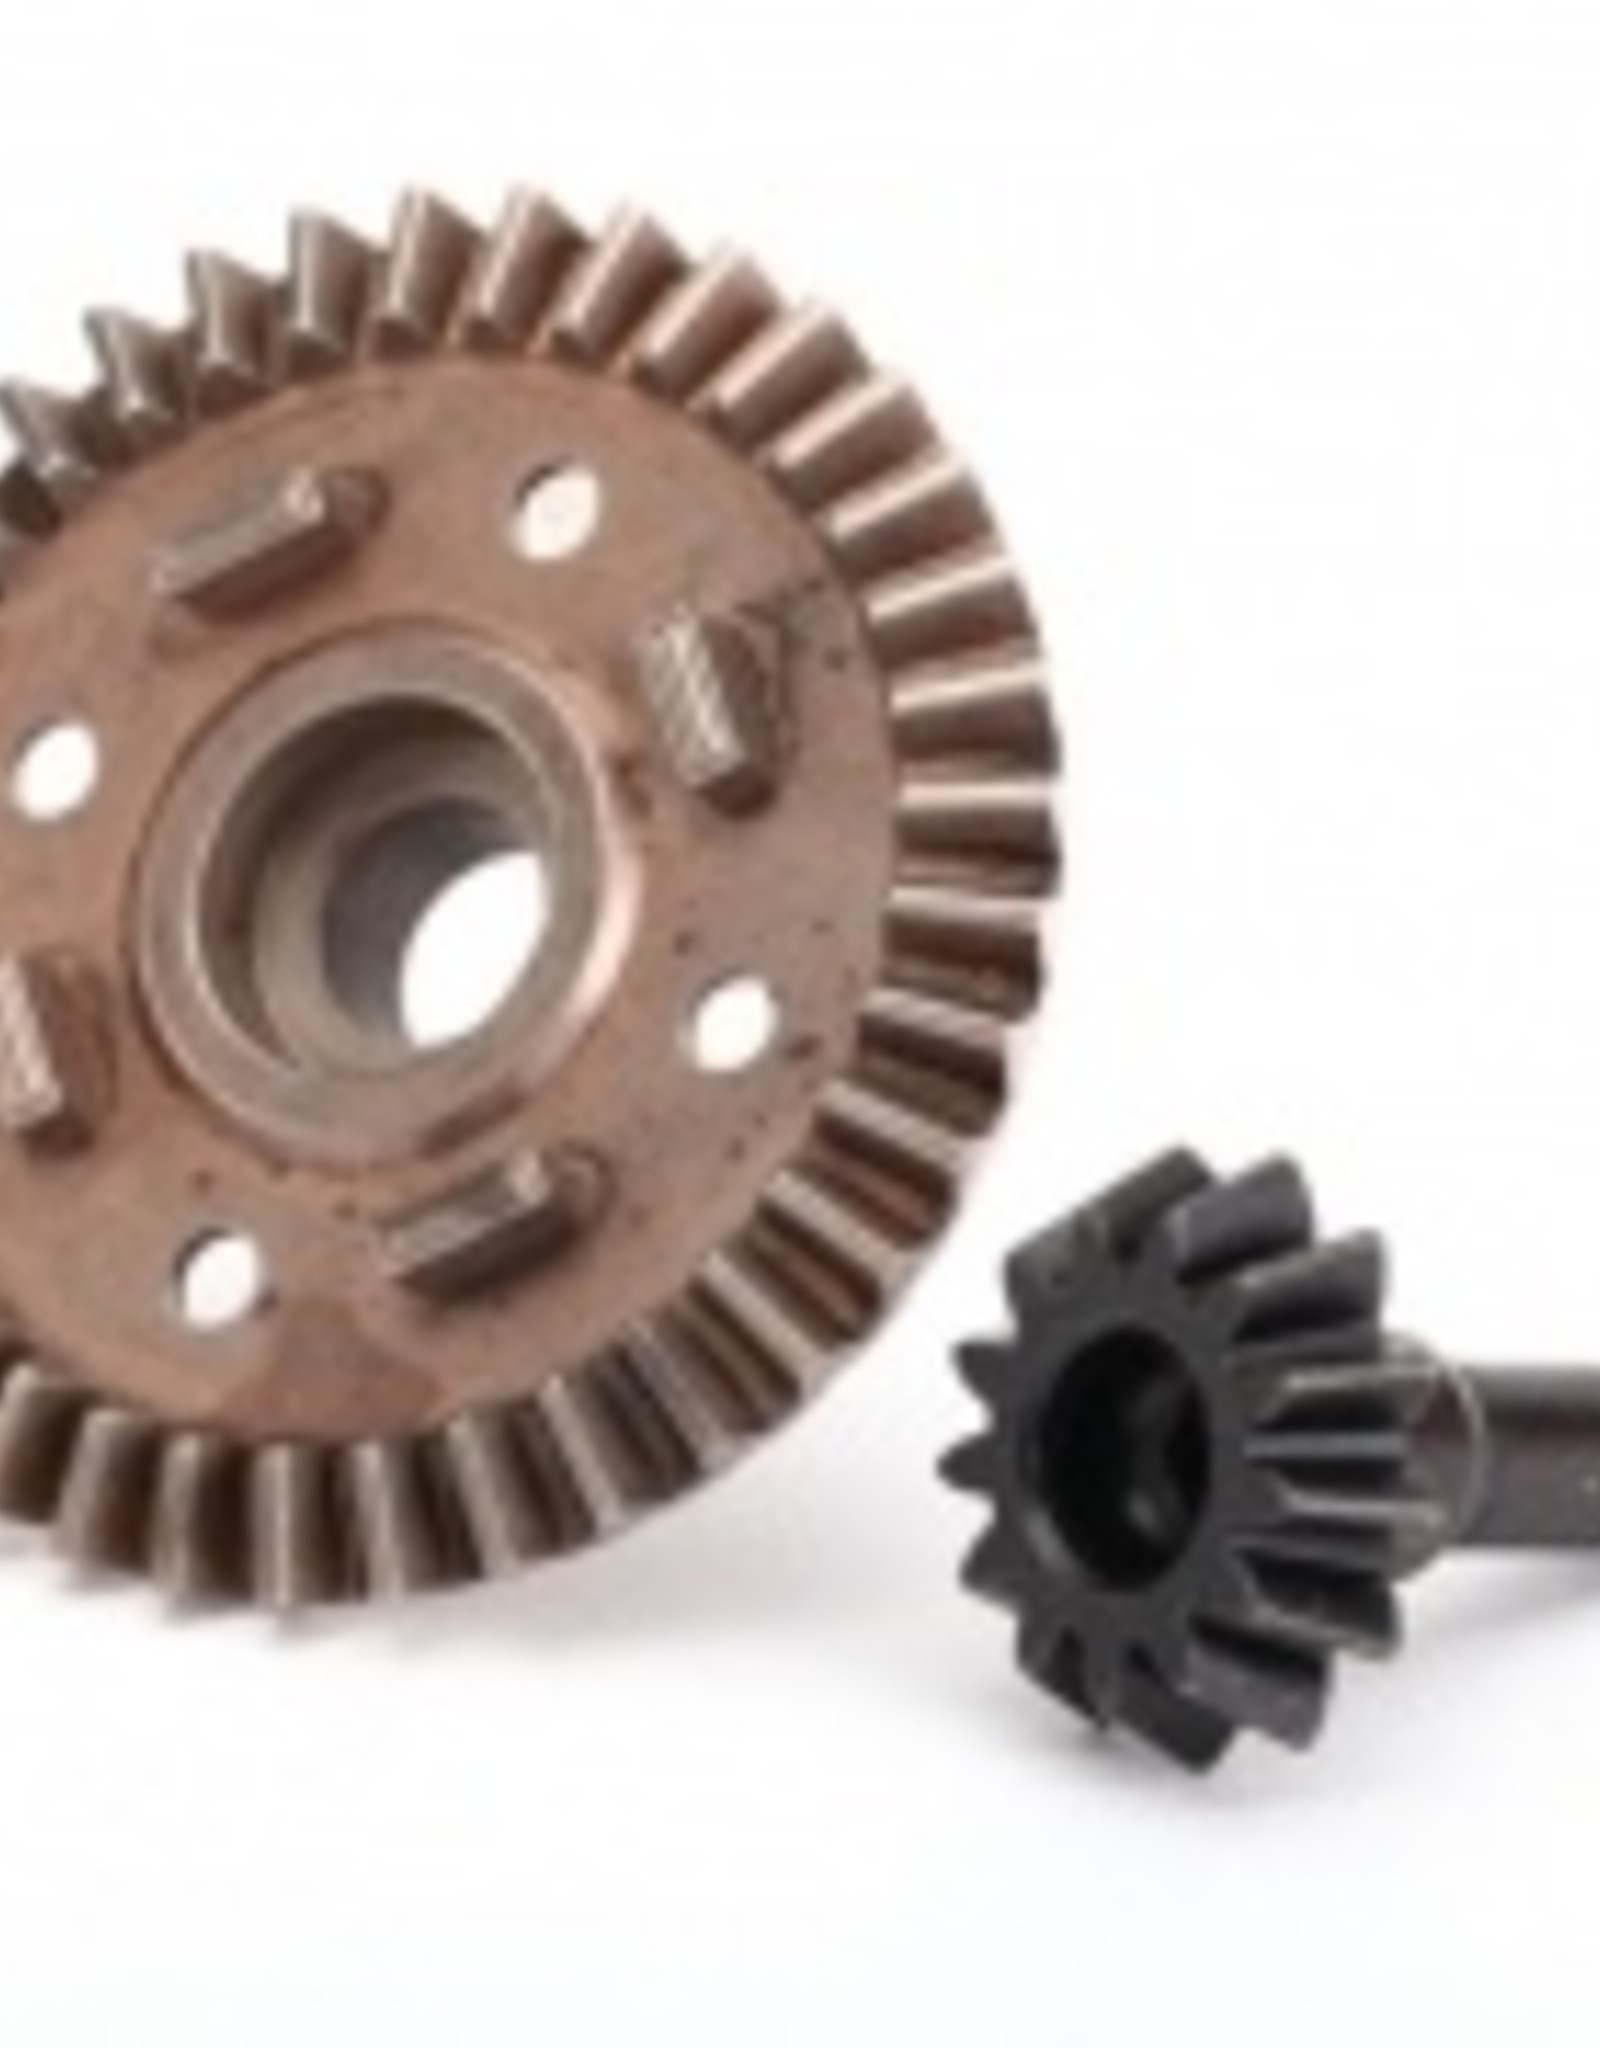 Traxxas Traxxas E-Revo 2.0 Ring gear, differential/ pinion gear, differential